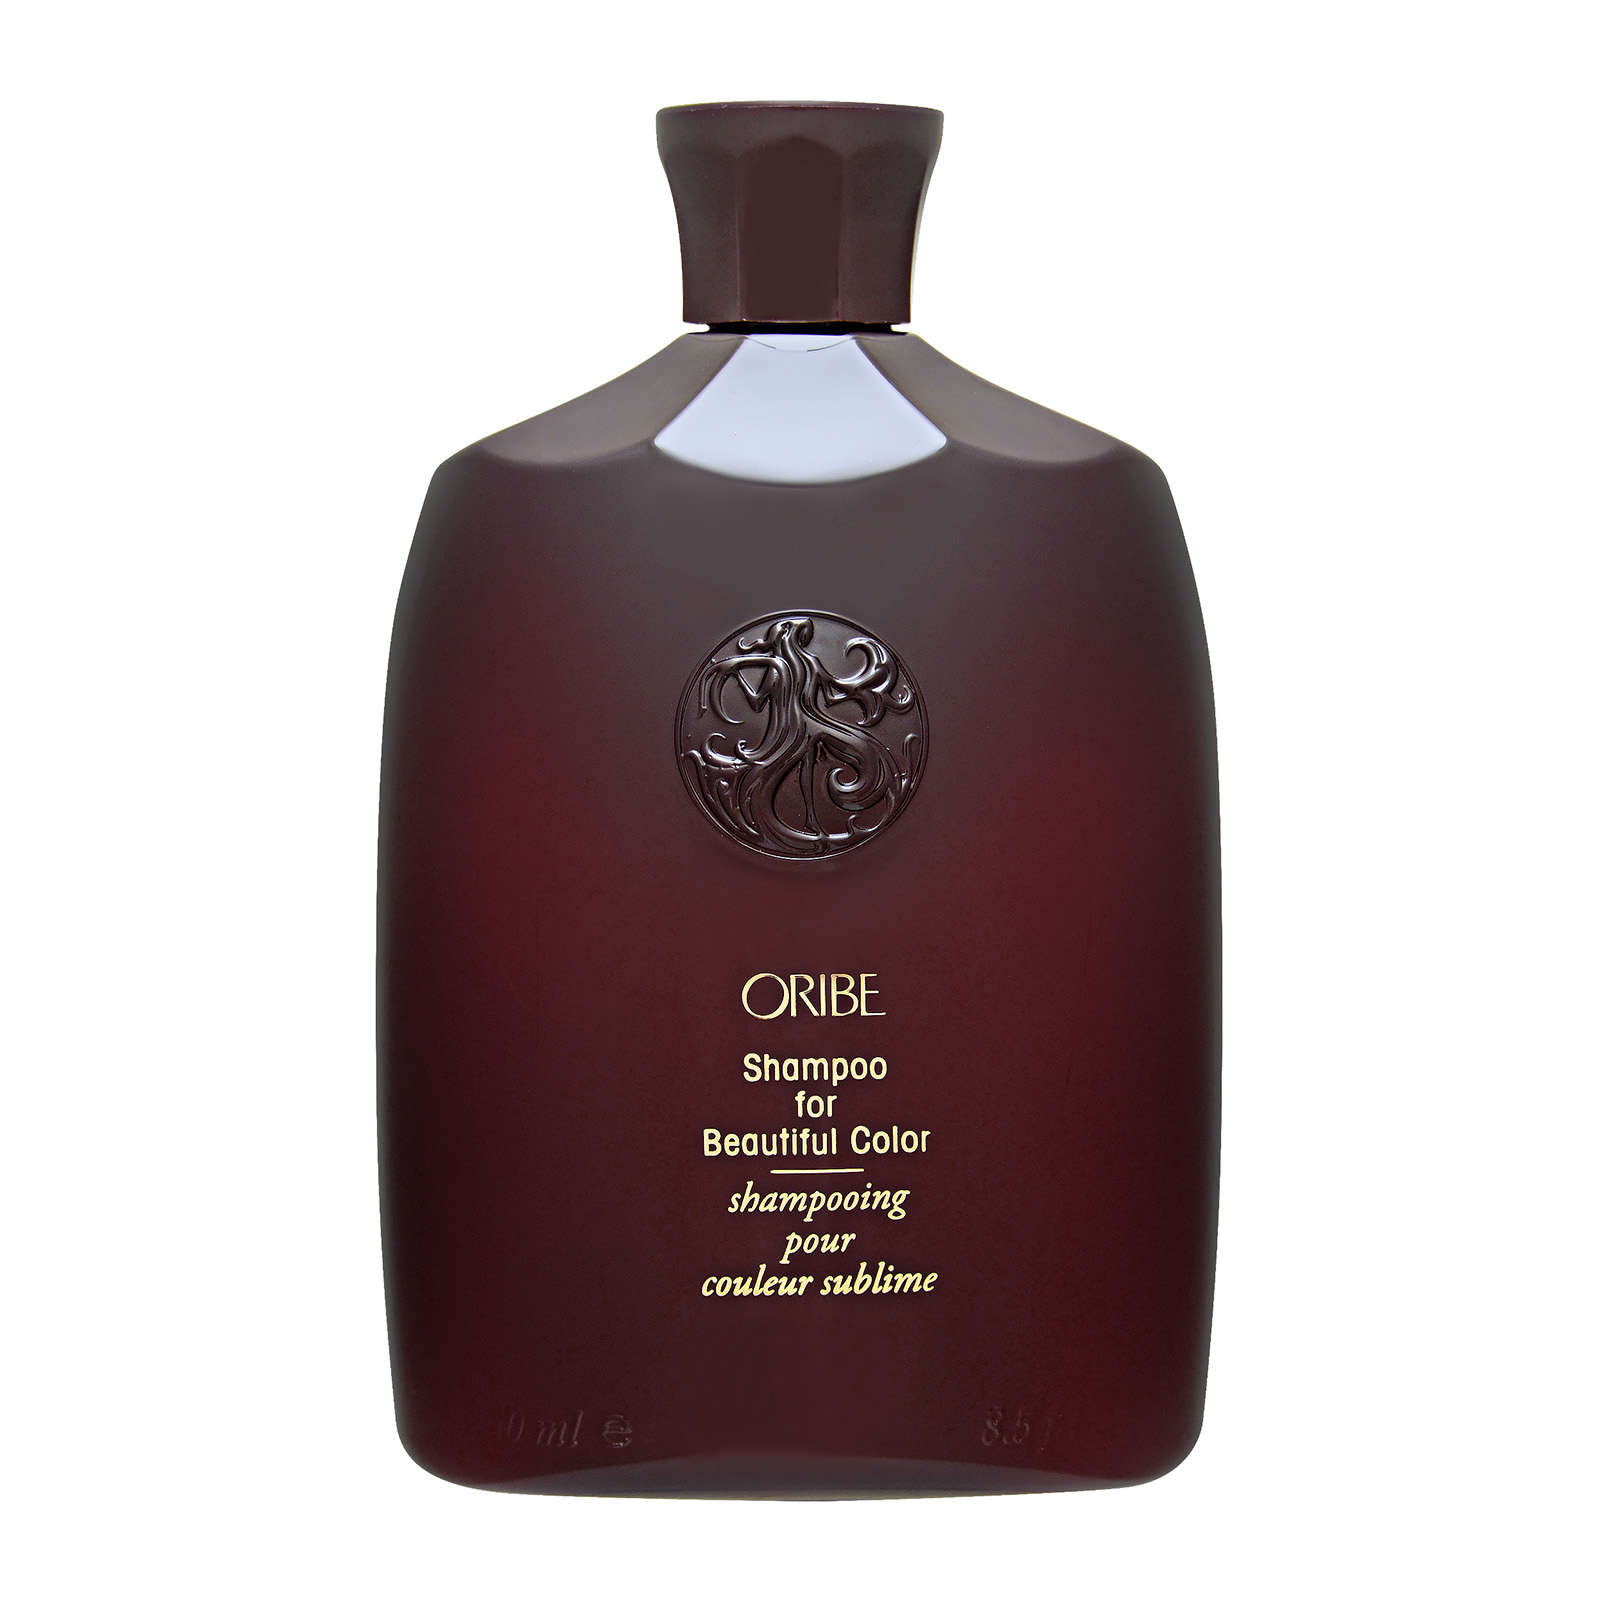 Oribe Shampoo Details About Oribe Beautiful Color Shampoo 8 5oz 250ml Personal Care Haircare